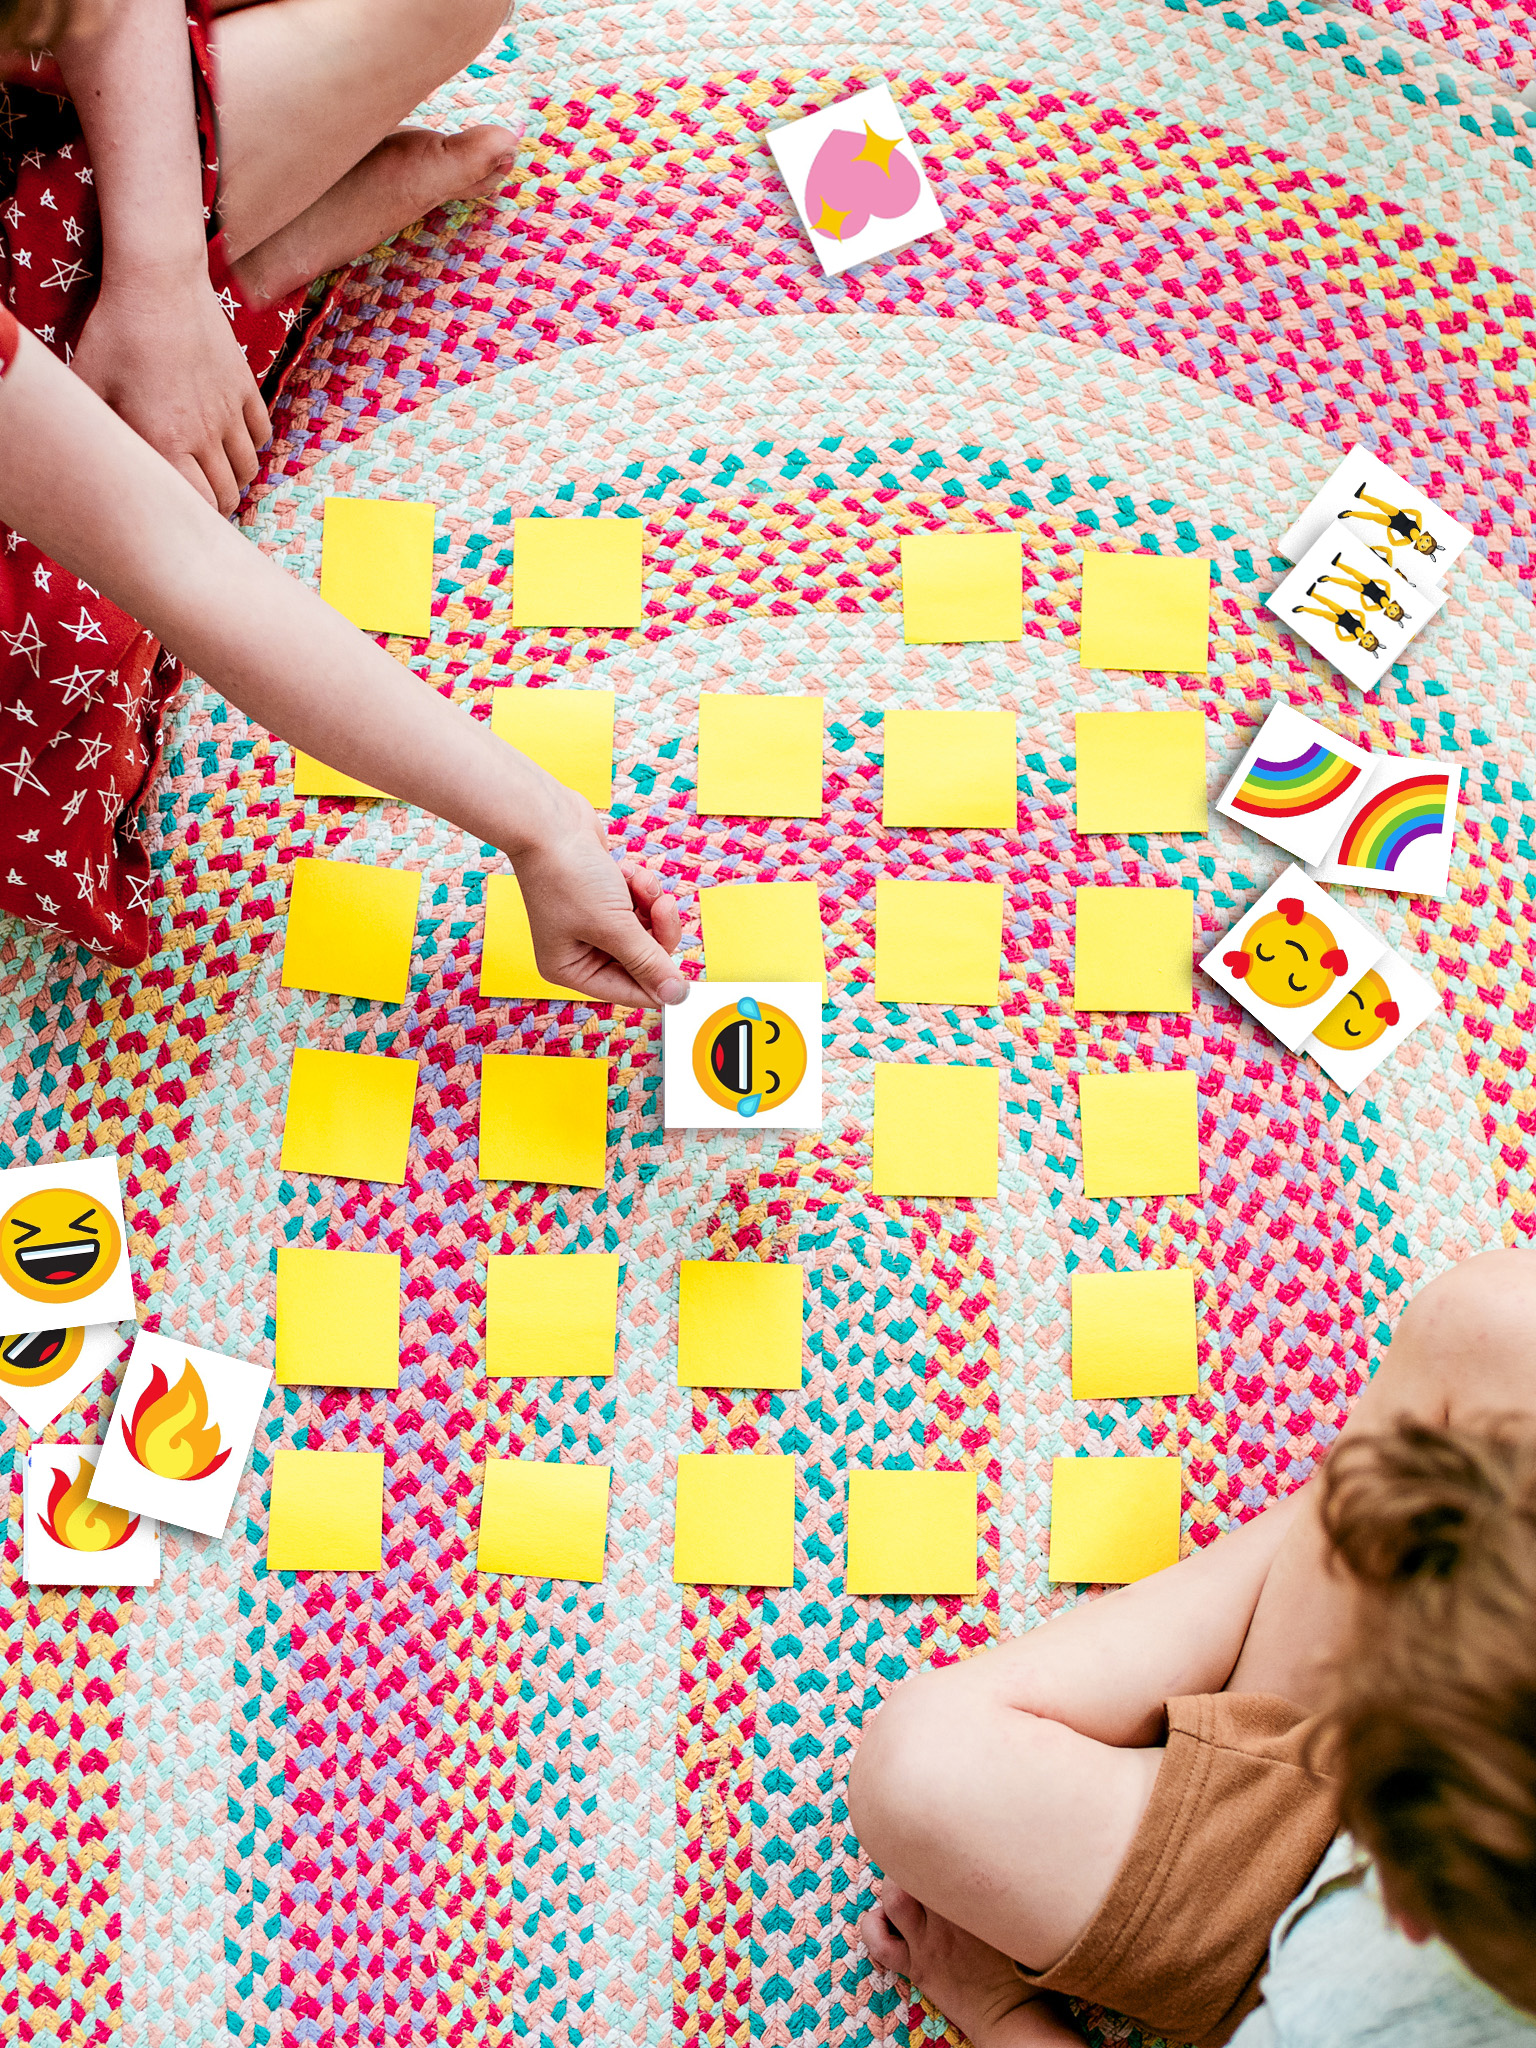 Free Printable - Emoji Matching Game for kids. Print out an emoji game and match two icons to win!